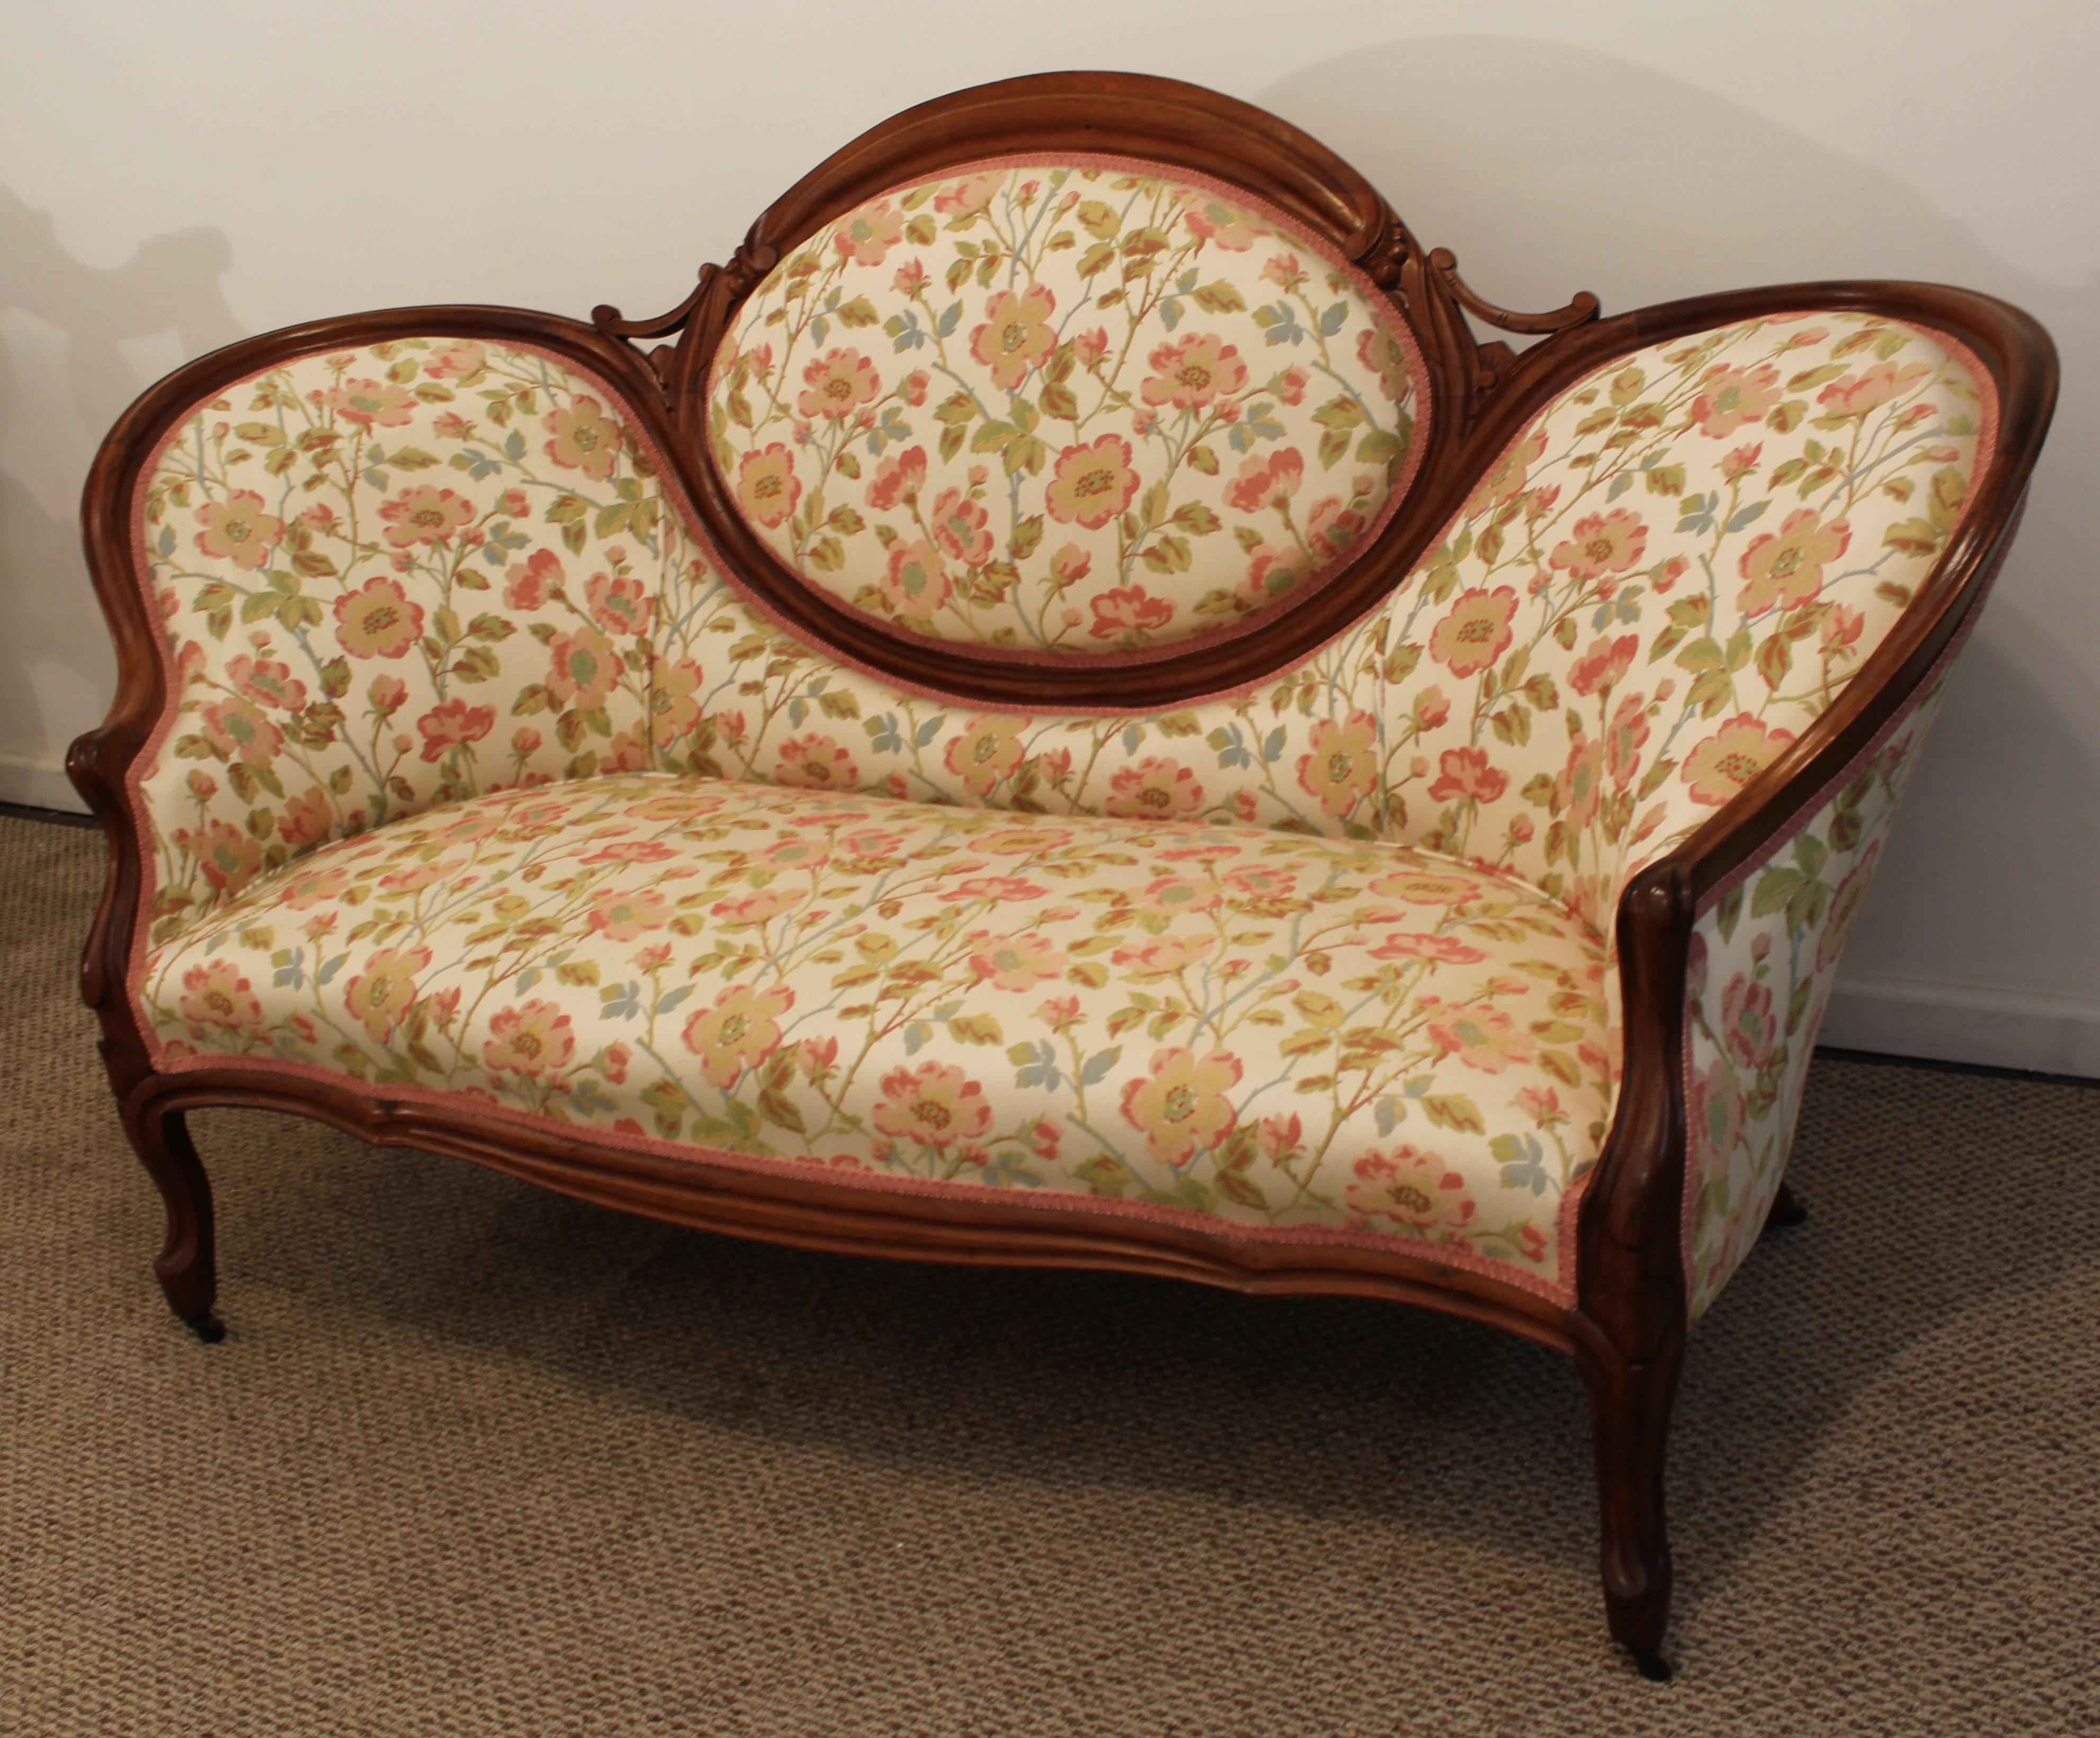 Couch On Wheels Antique Victorian Carved Sofa On Wheels Chairish